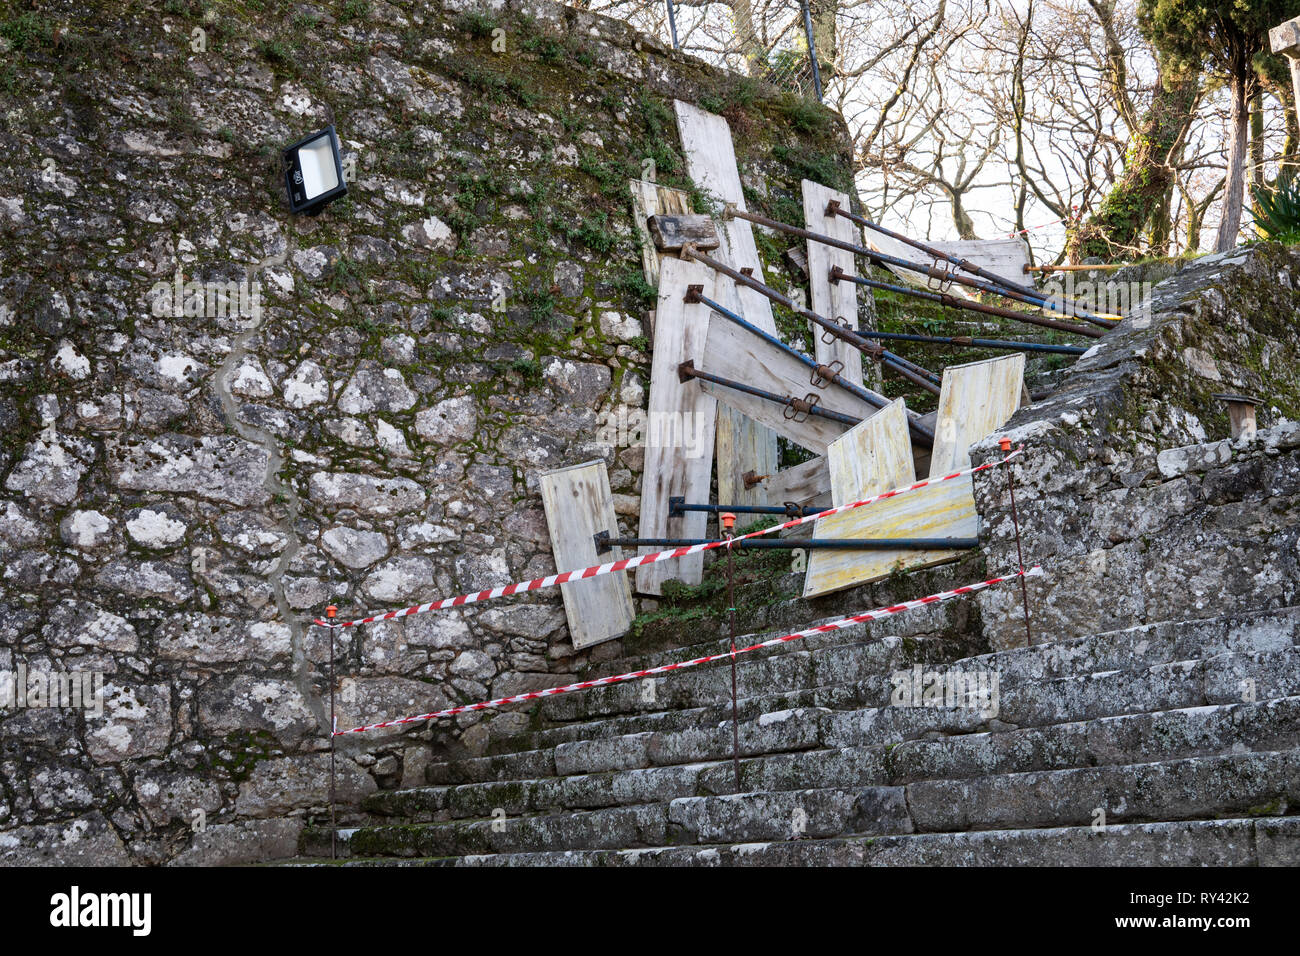 Antique stone wall with struts to prevent damages and falling stones - Stock Image